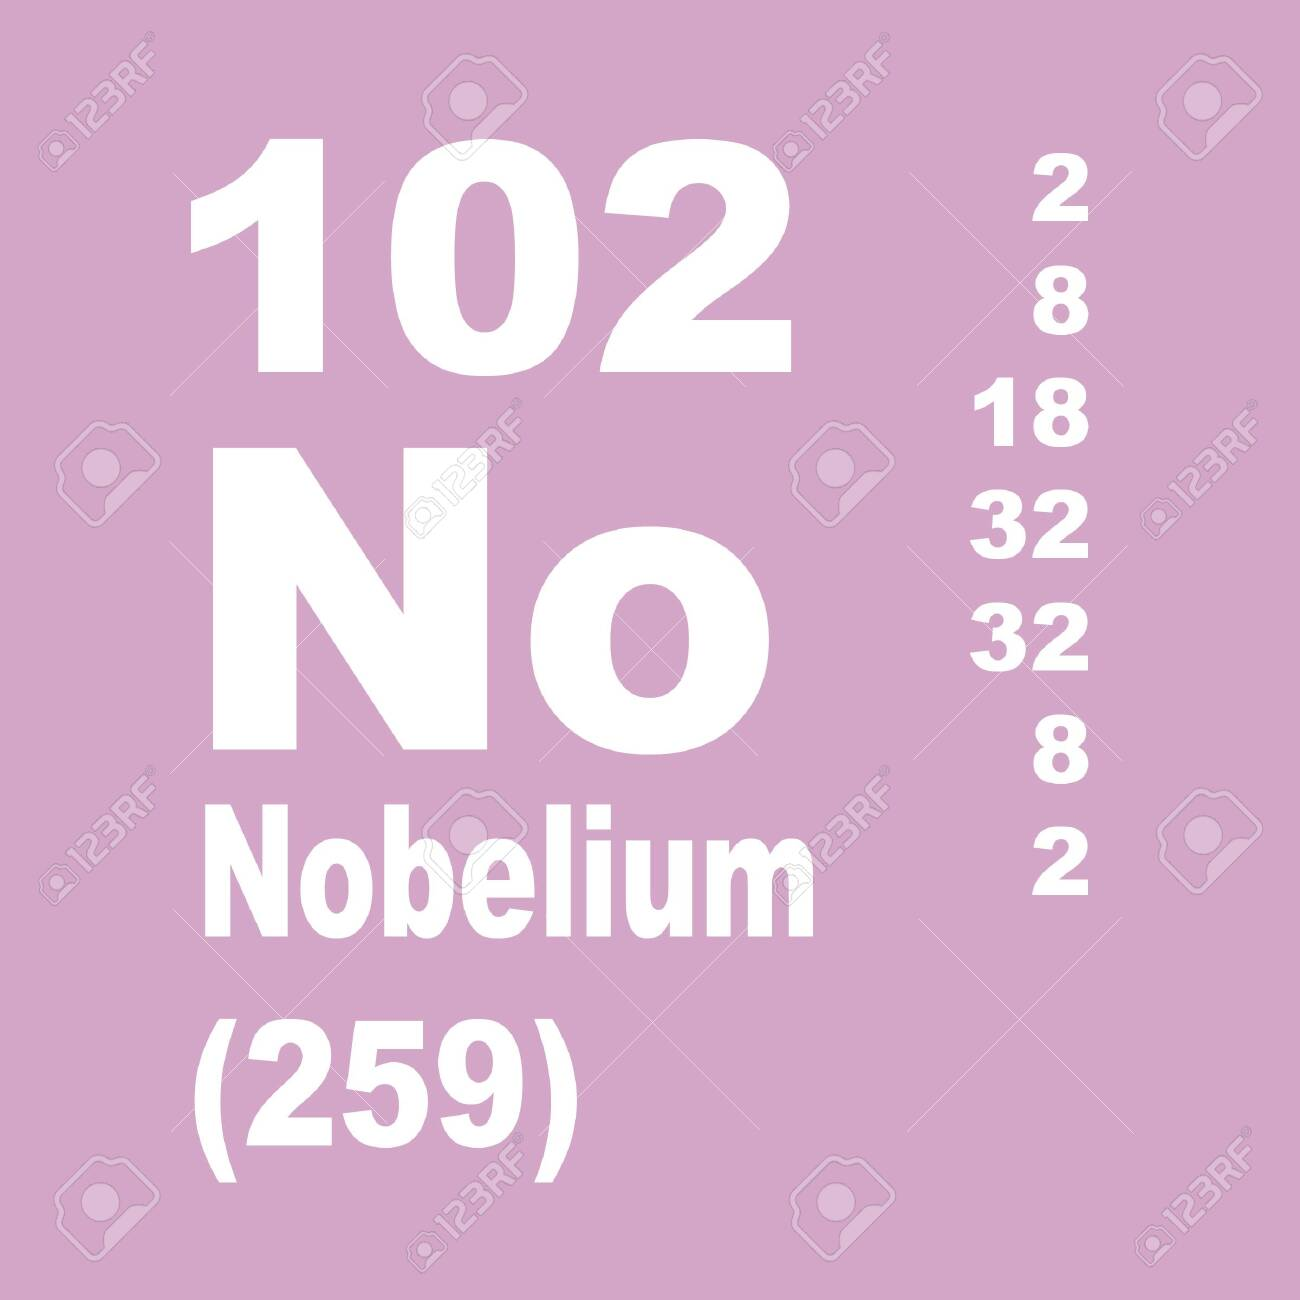 Nobelium is a synthetic chemical element with symbol No and atomic number 102. - 137052875